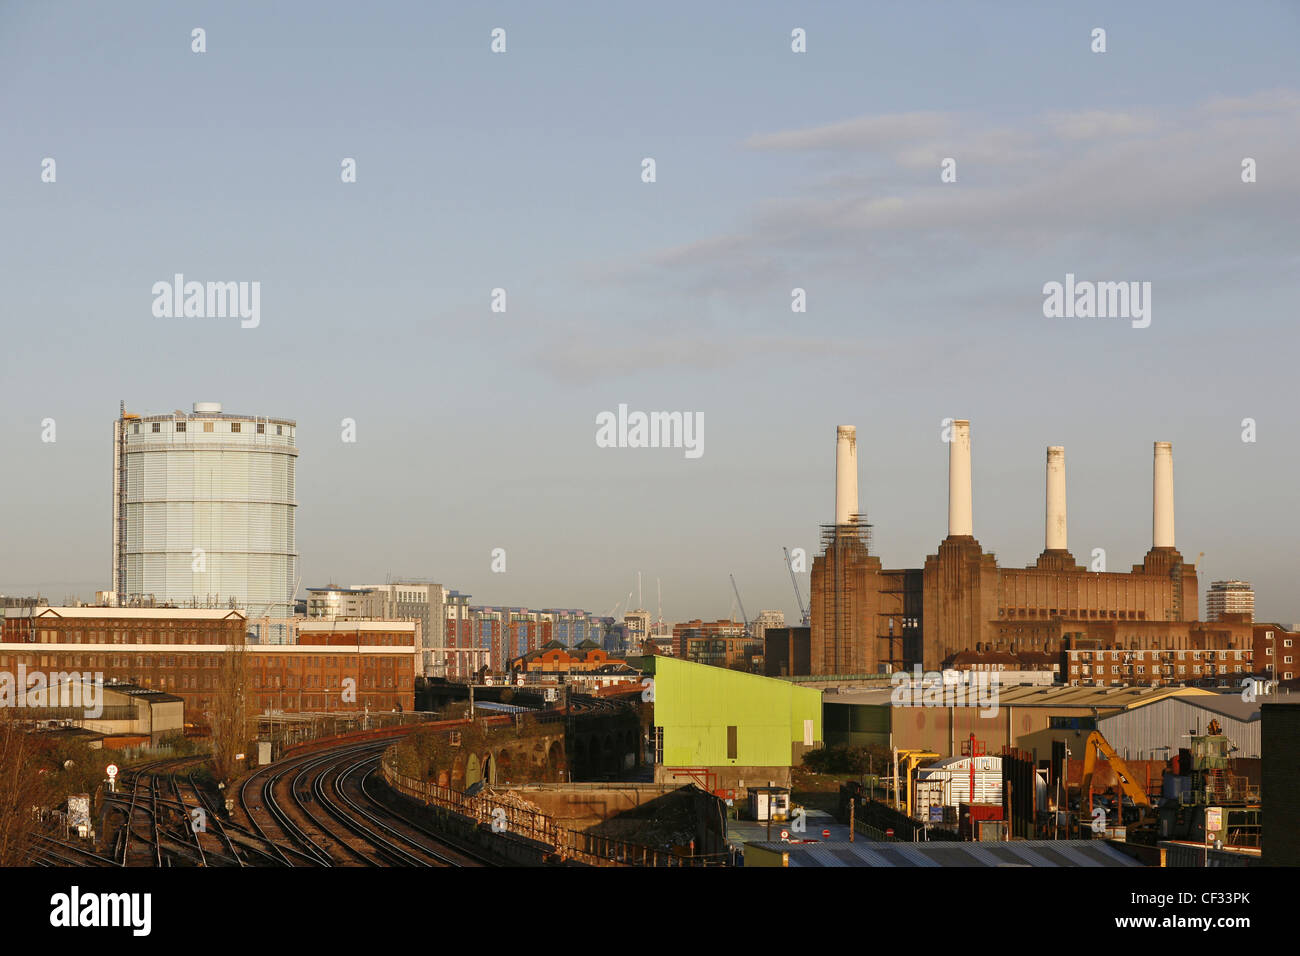 Railway tracks leading past the iconic London landmark, Battersea Power Station, which ceased producing electricity - Stock Image